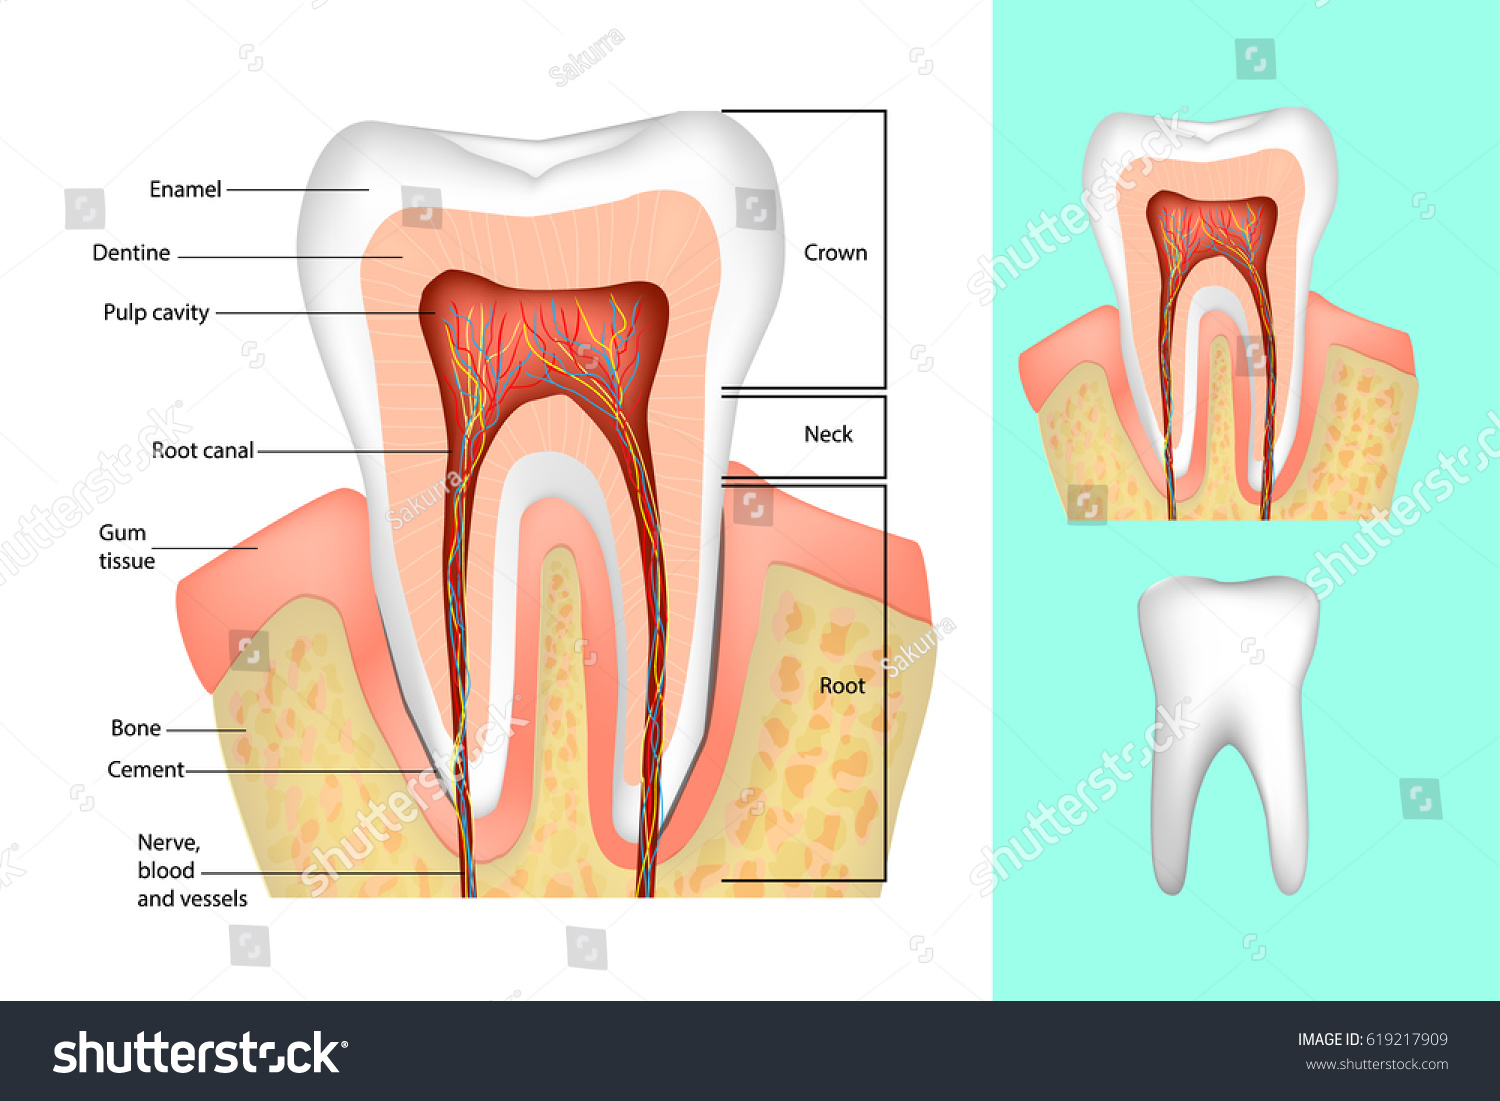 Tooth Structure Medical Diagram Structure Inside Stock Vector 2018